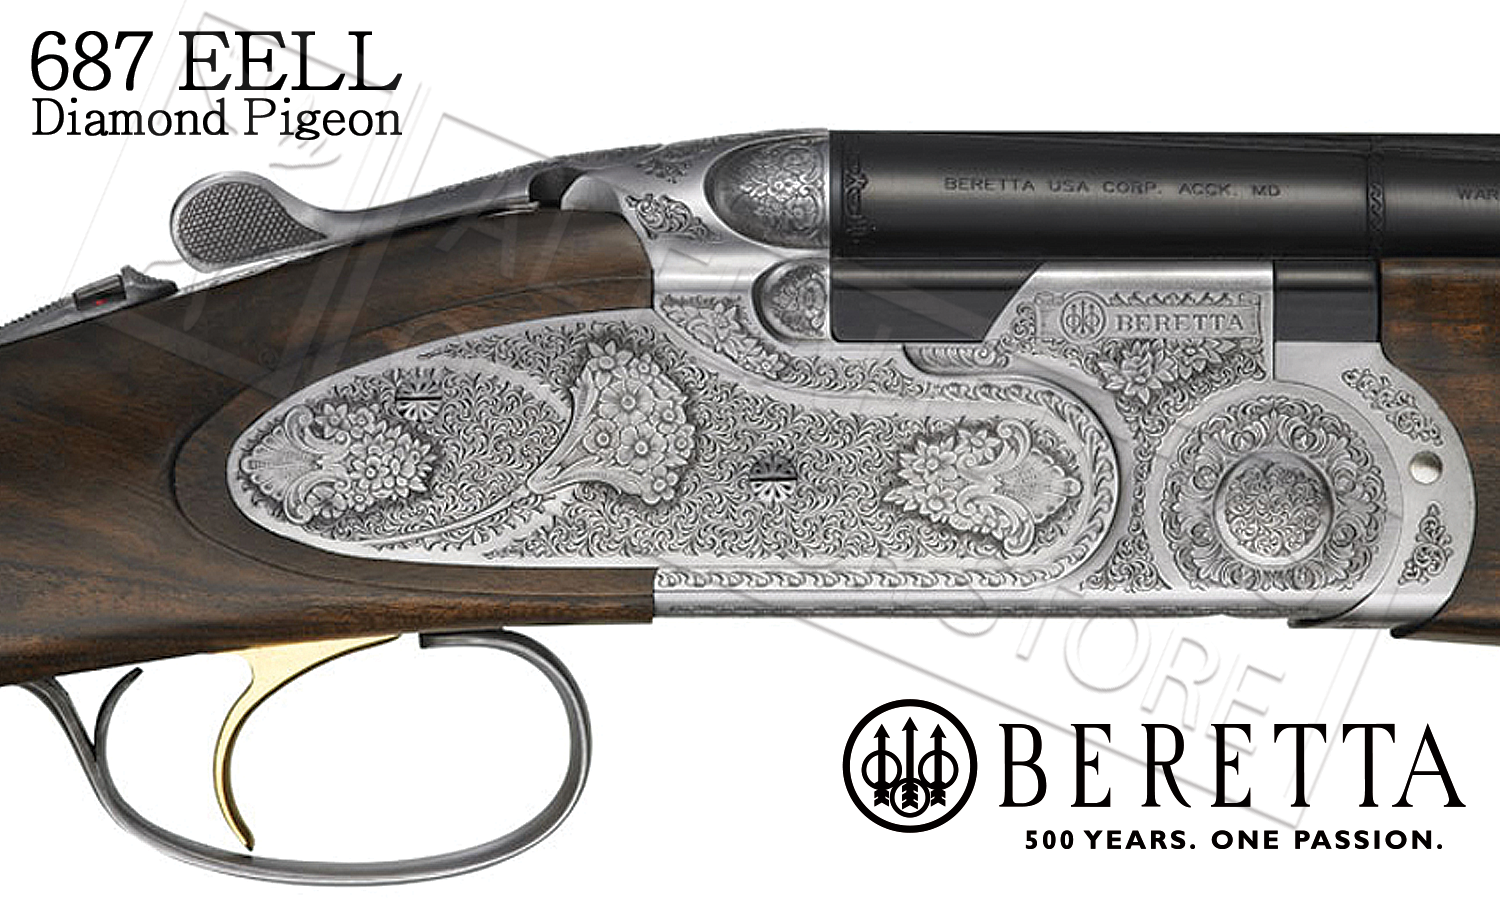 ... Beretta 687 EELL Diamond Pigeon Over-Under Field Shotgun with Floral  Engraving, 12 or ...